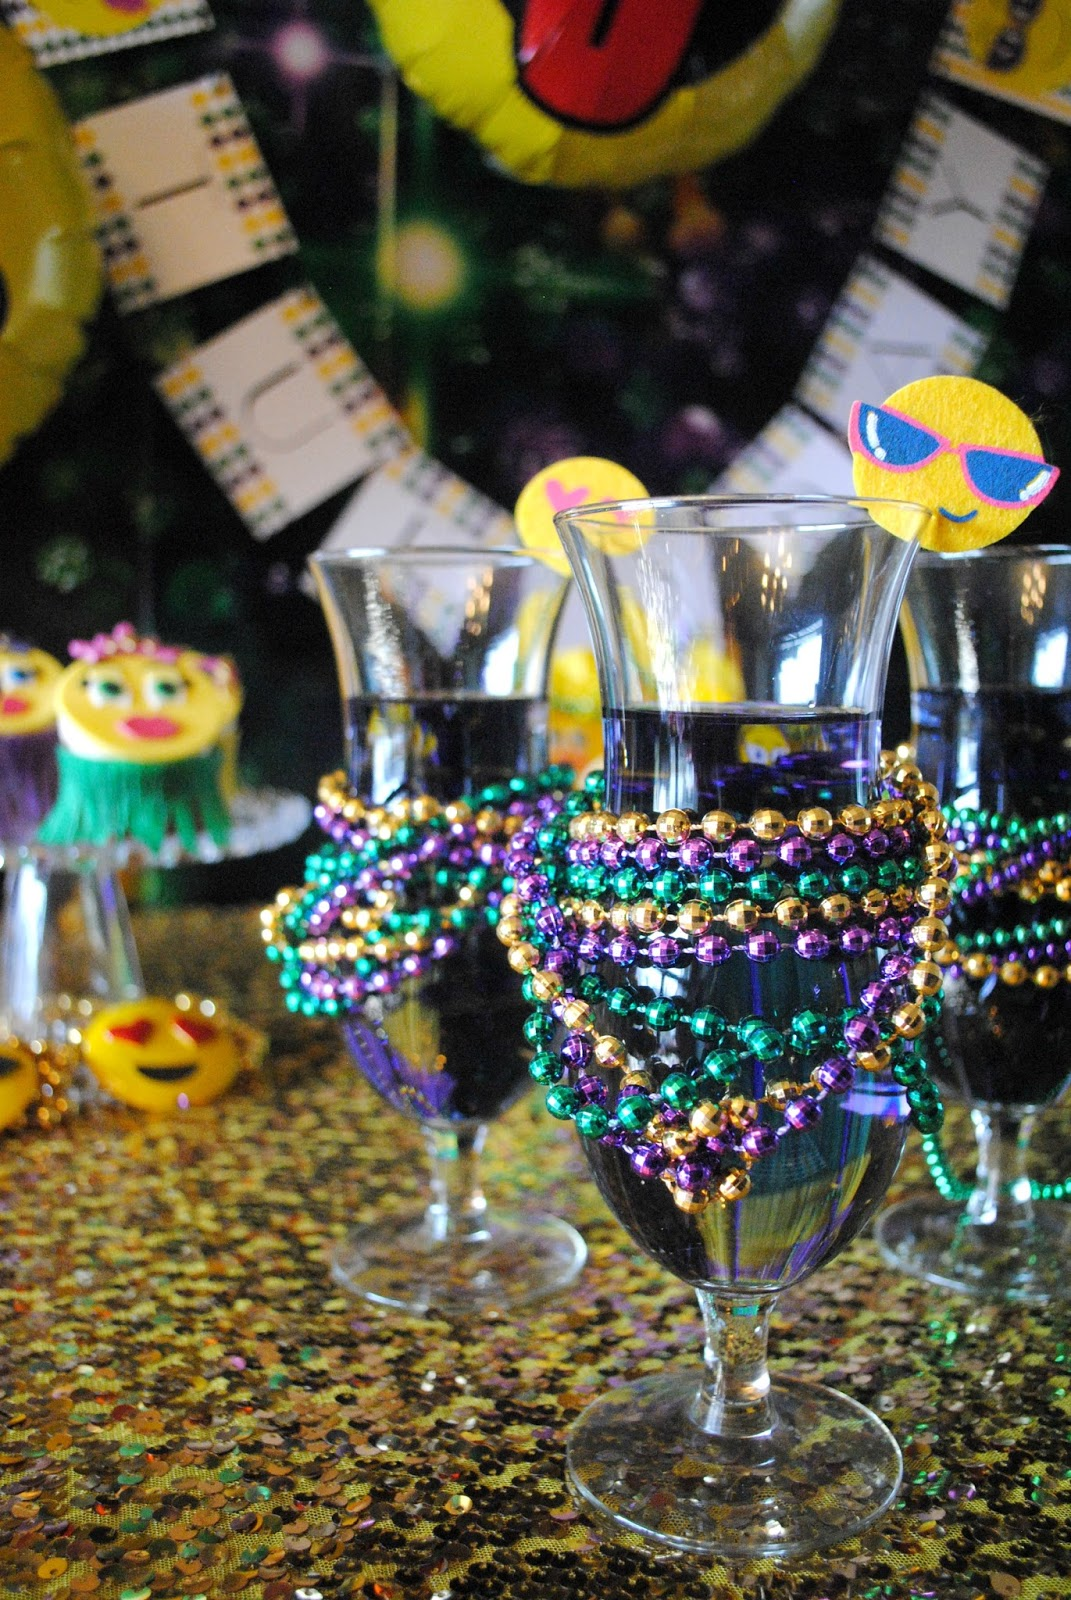 Fizzy Party Mardi Gras Dessert Table